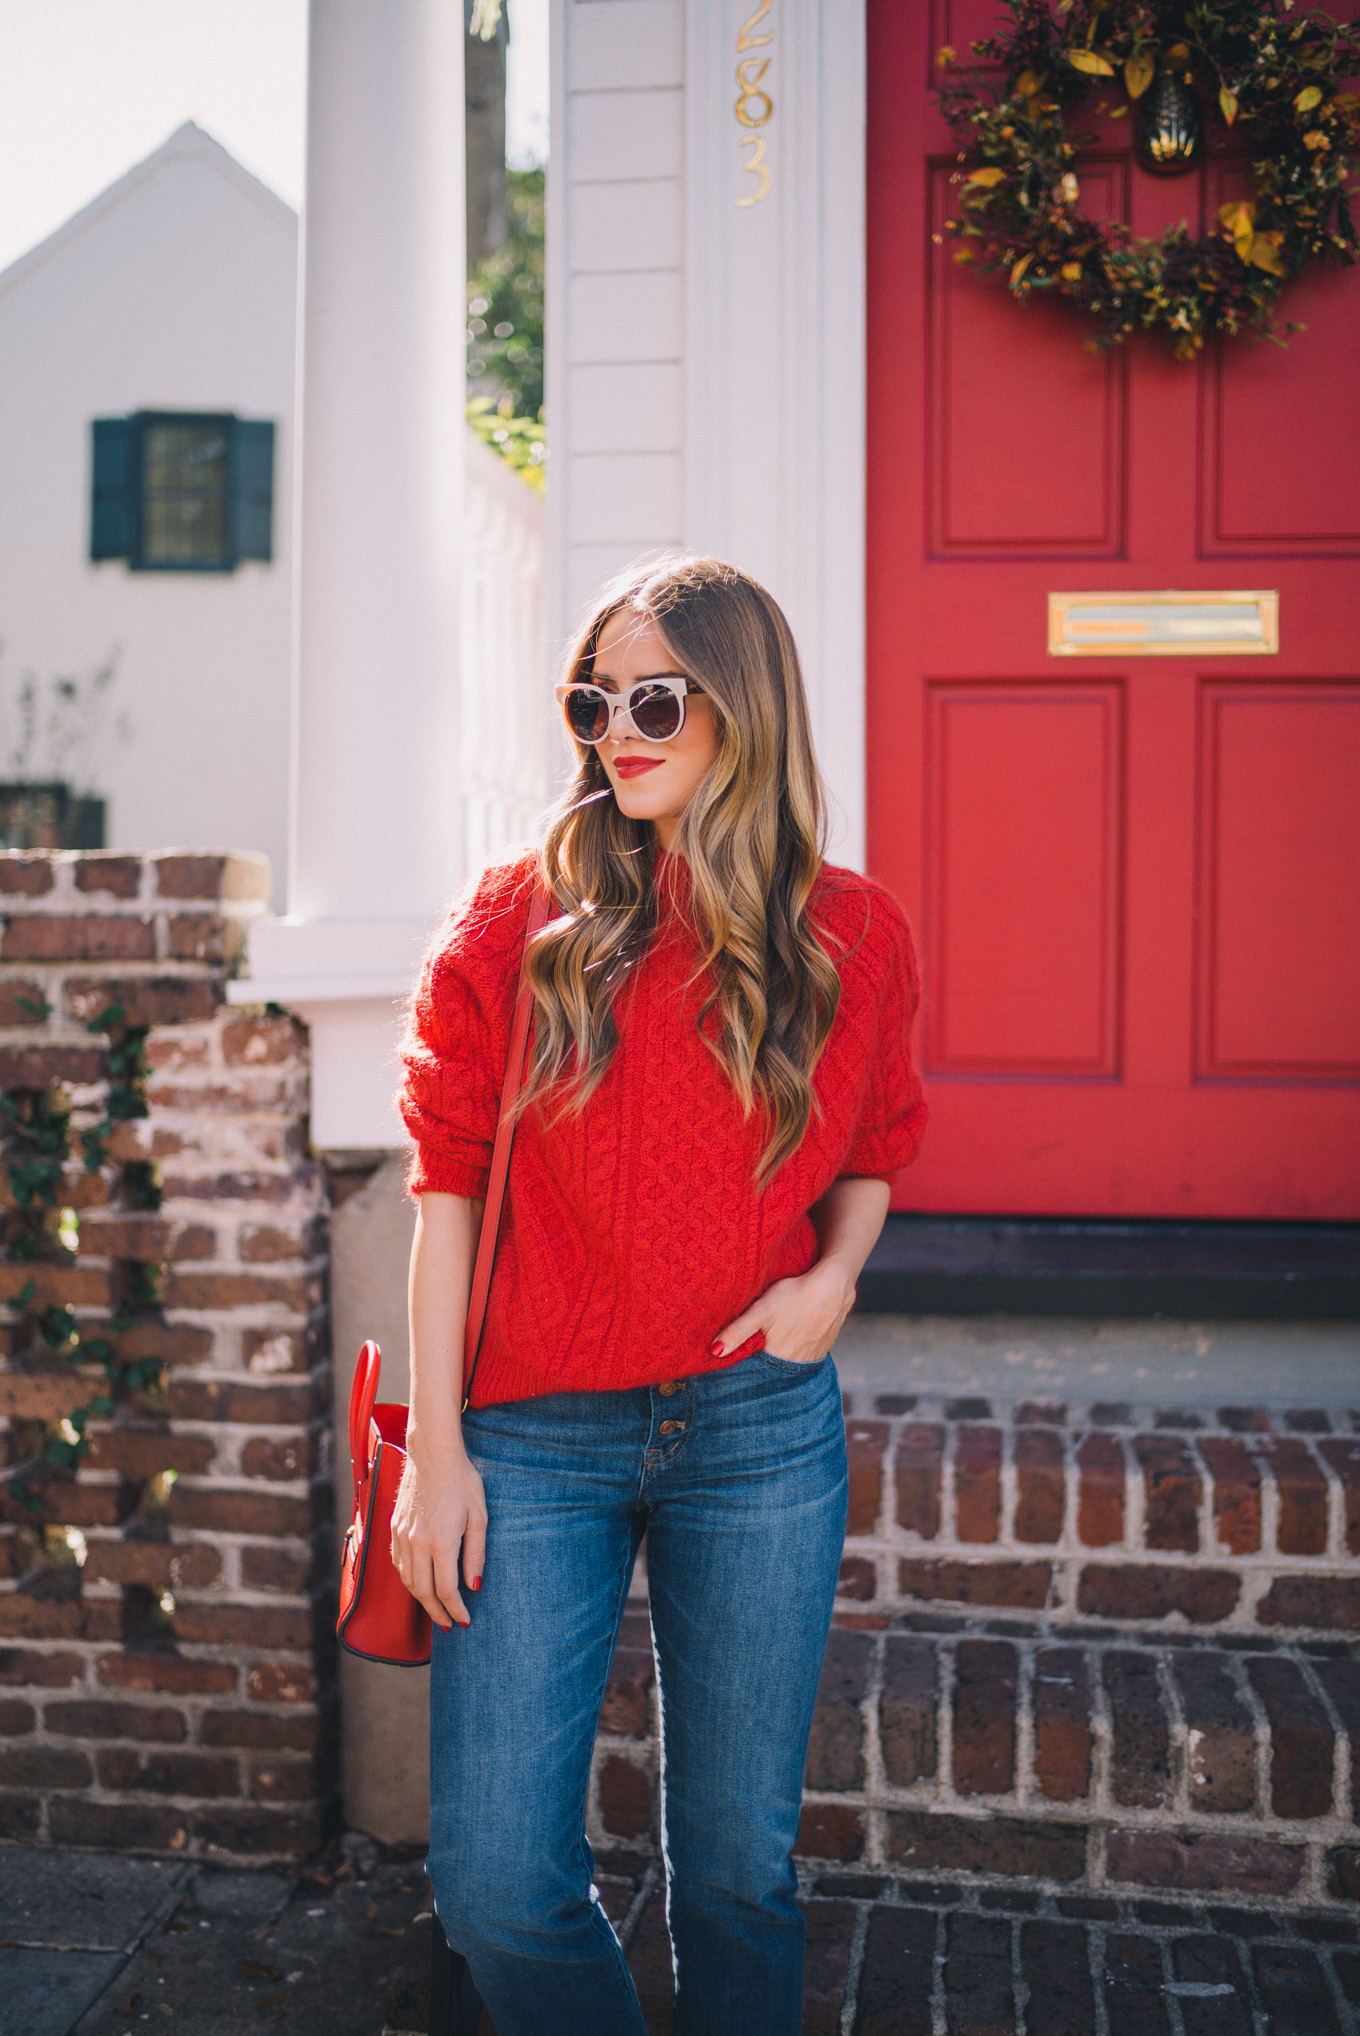 gmg-red-fall-1009784